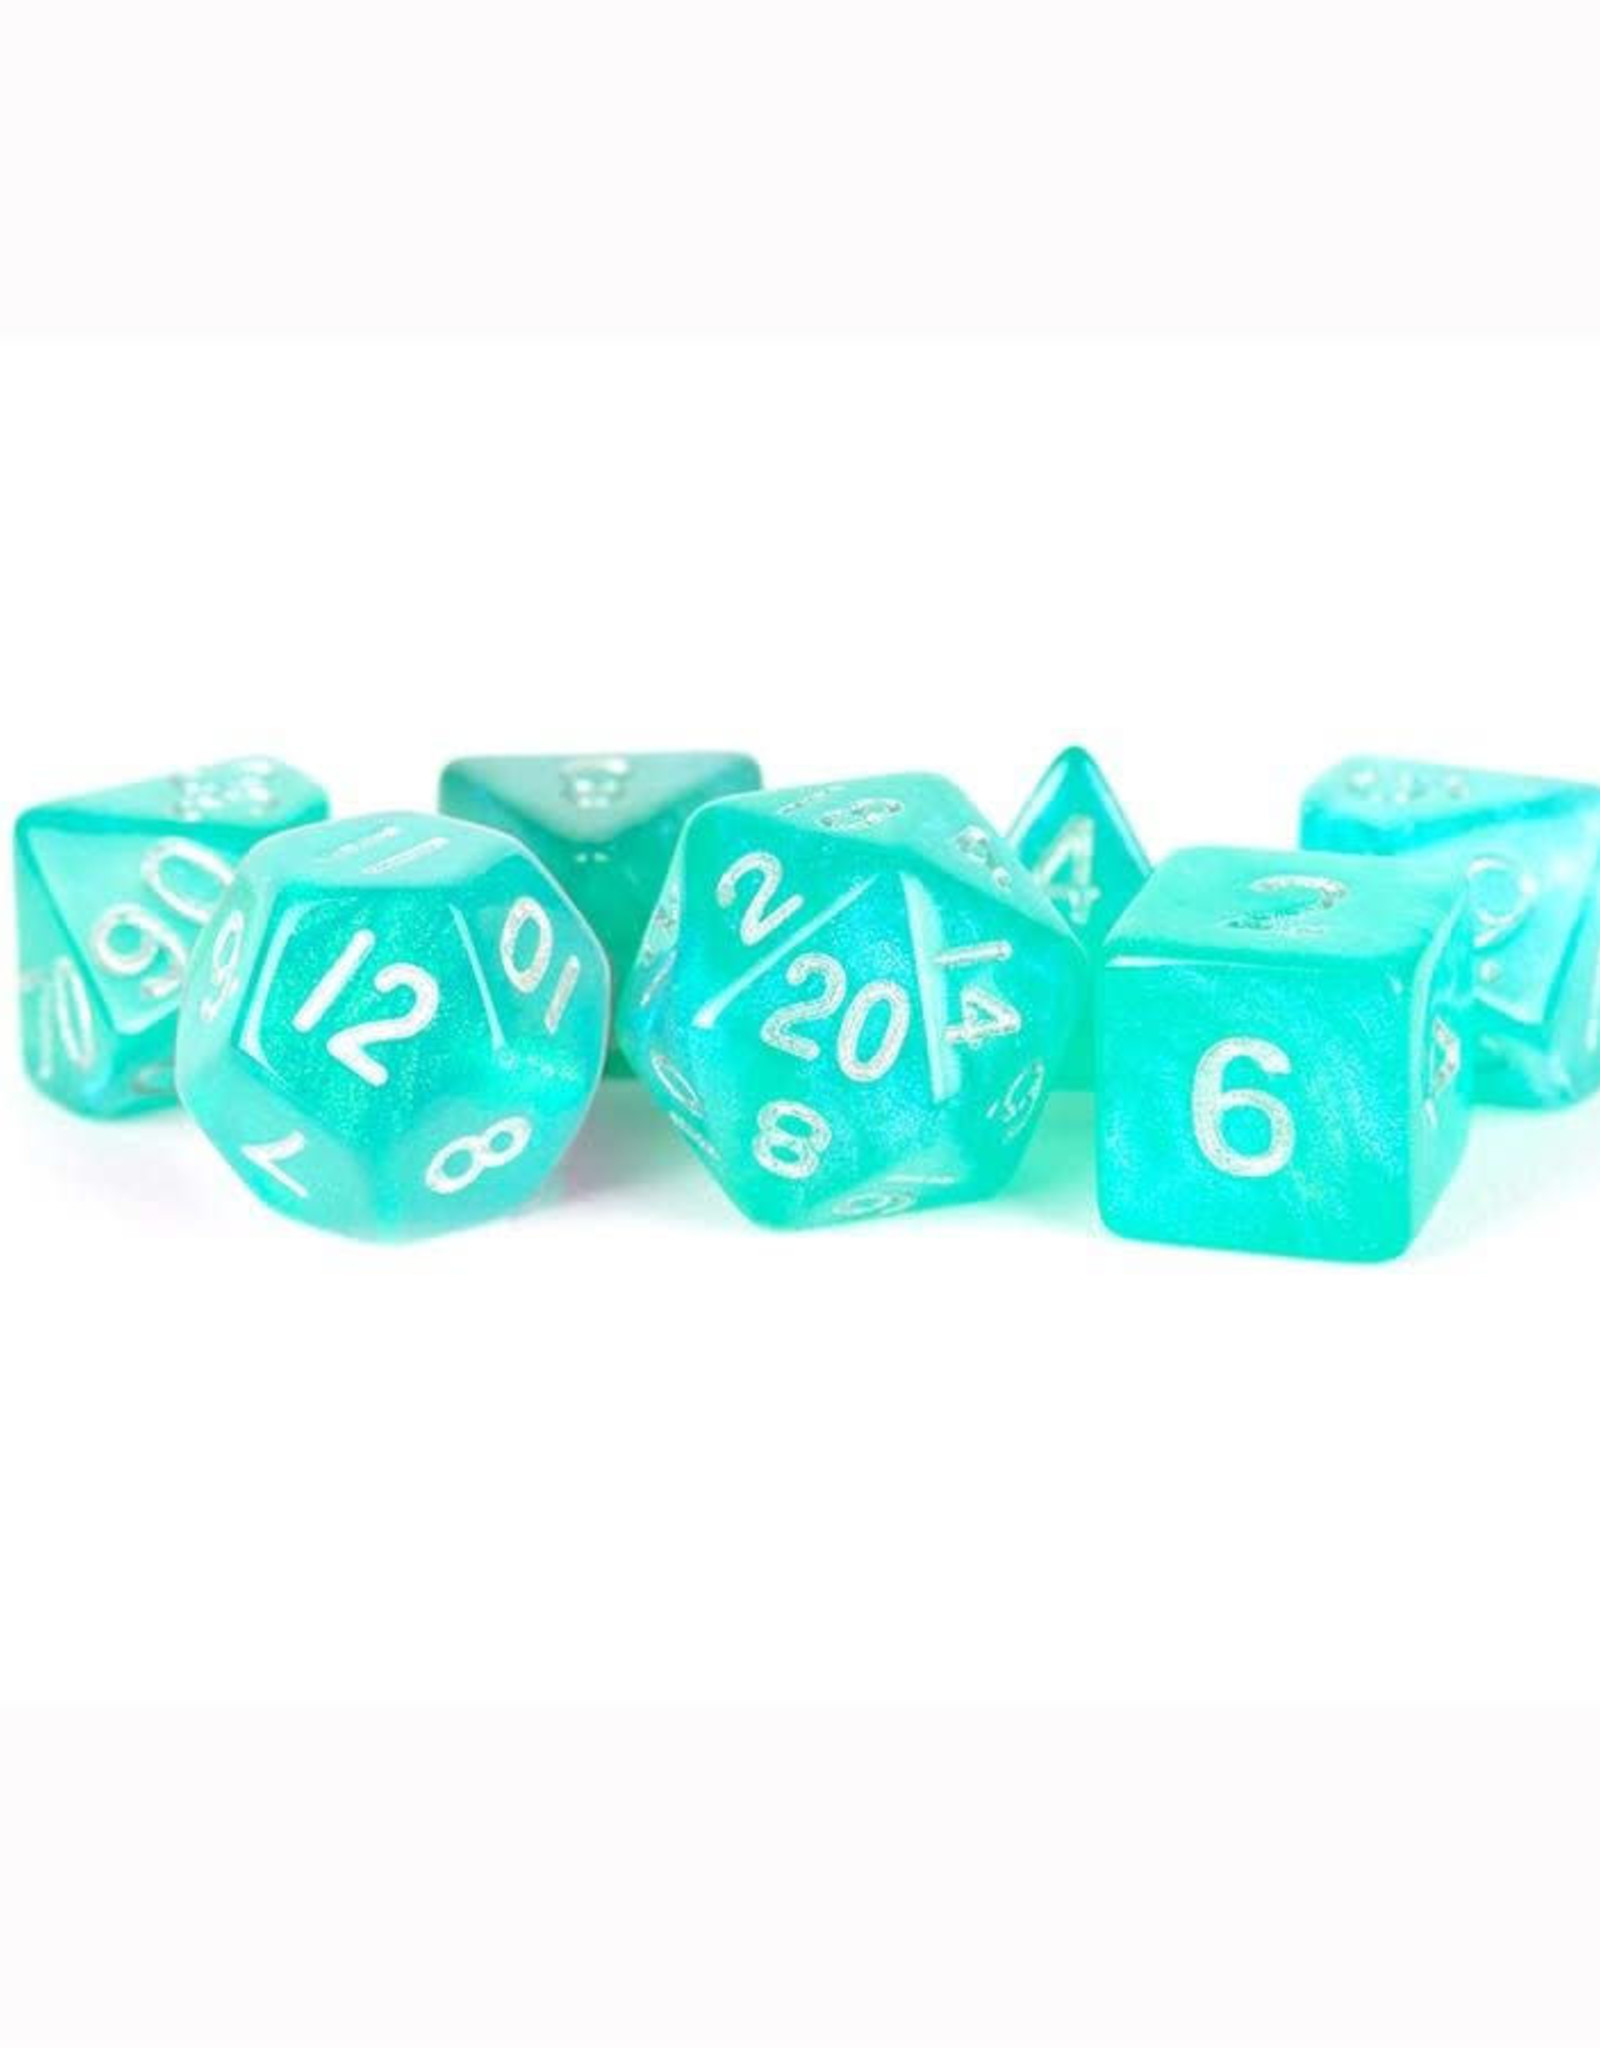 Metallic Dice Games 7ct Poly Acry Stardust: Turquoi